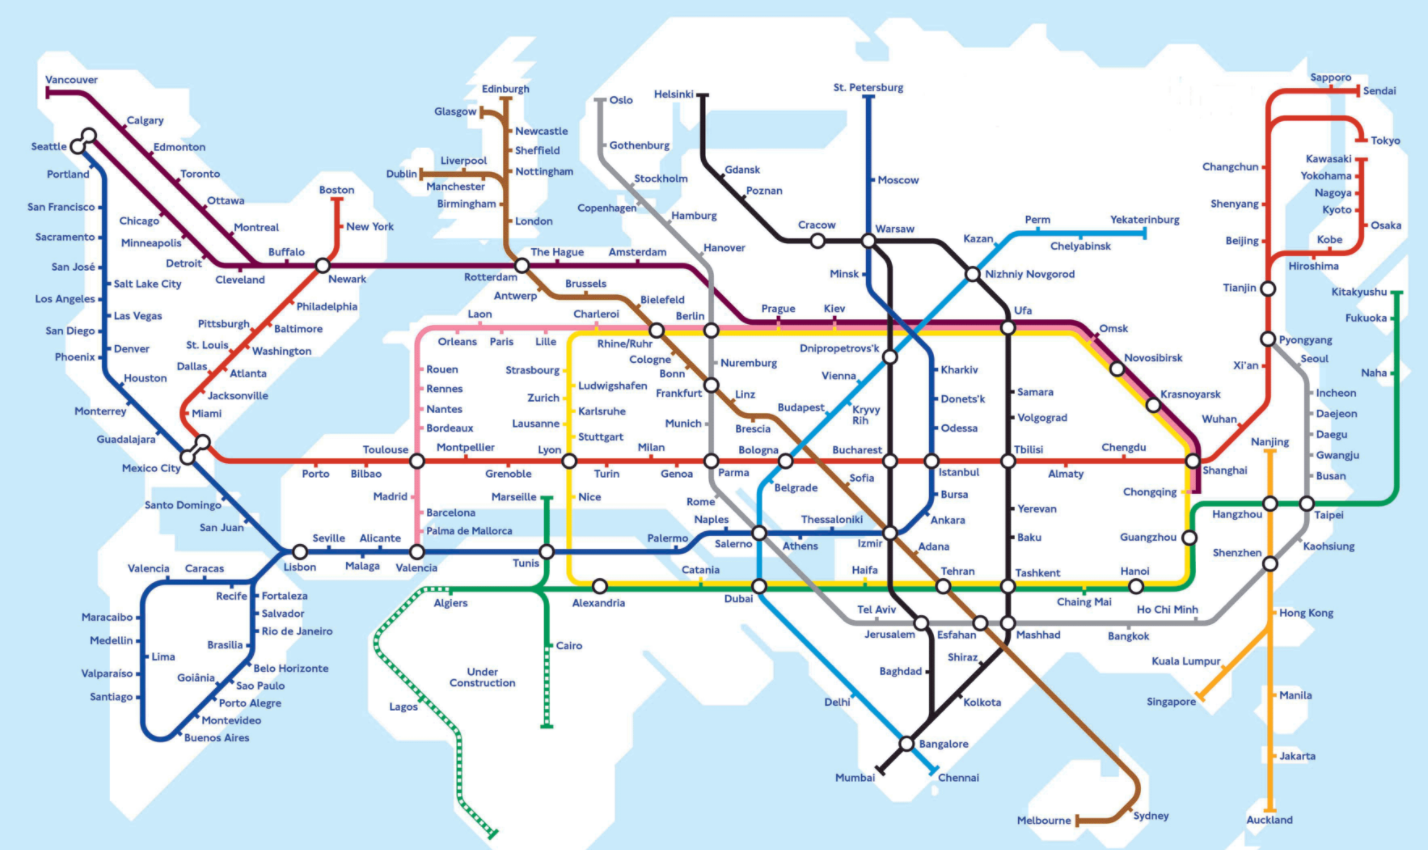 London Map World.Metro Map World Hyperloop Solarpunk The Future Starts Now Map